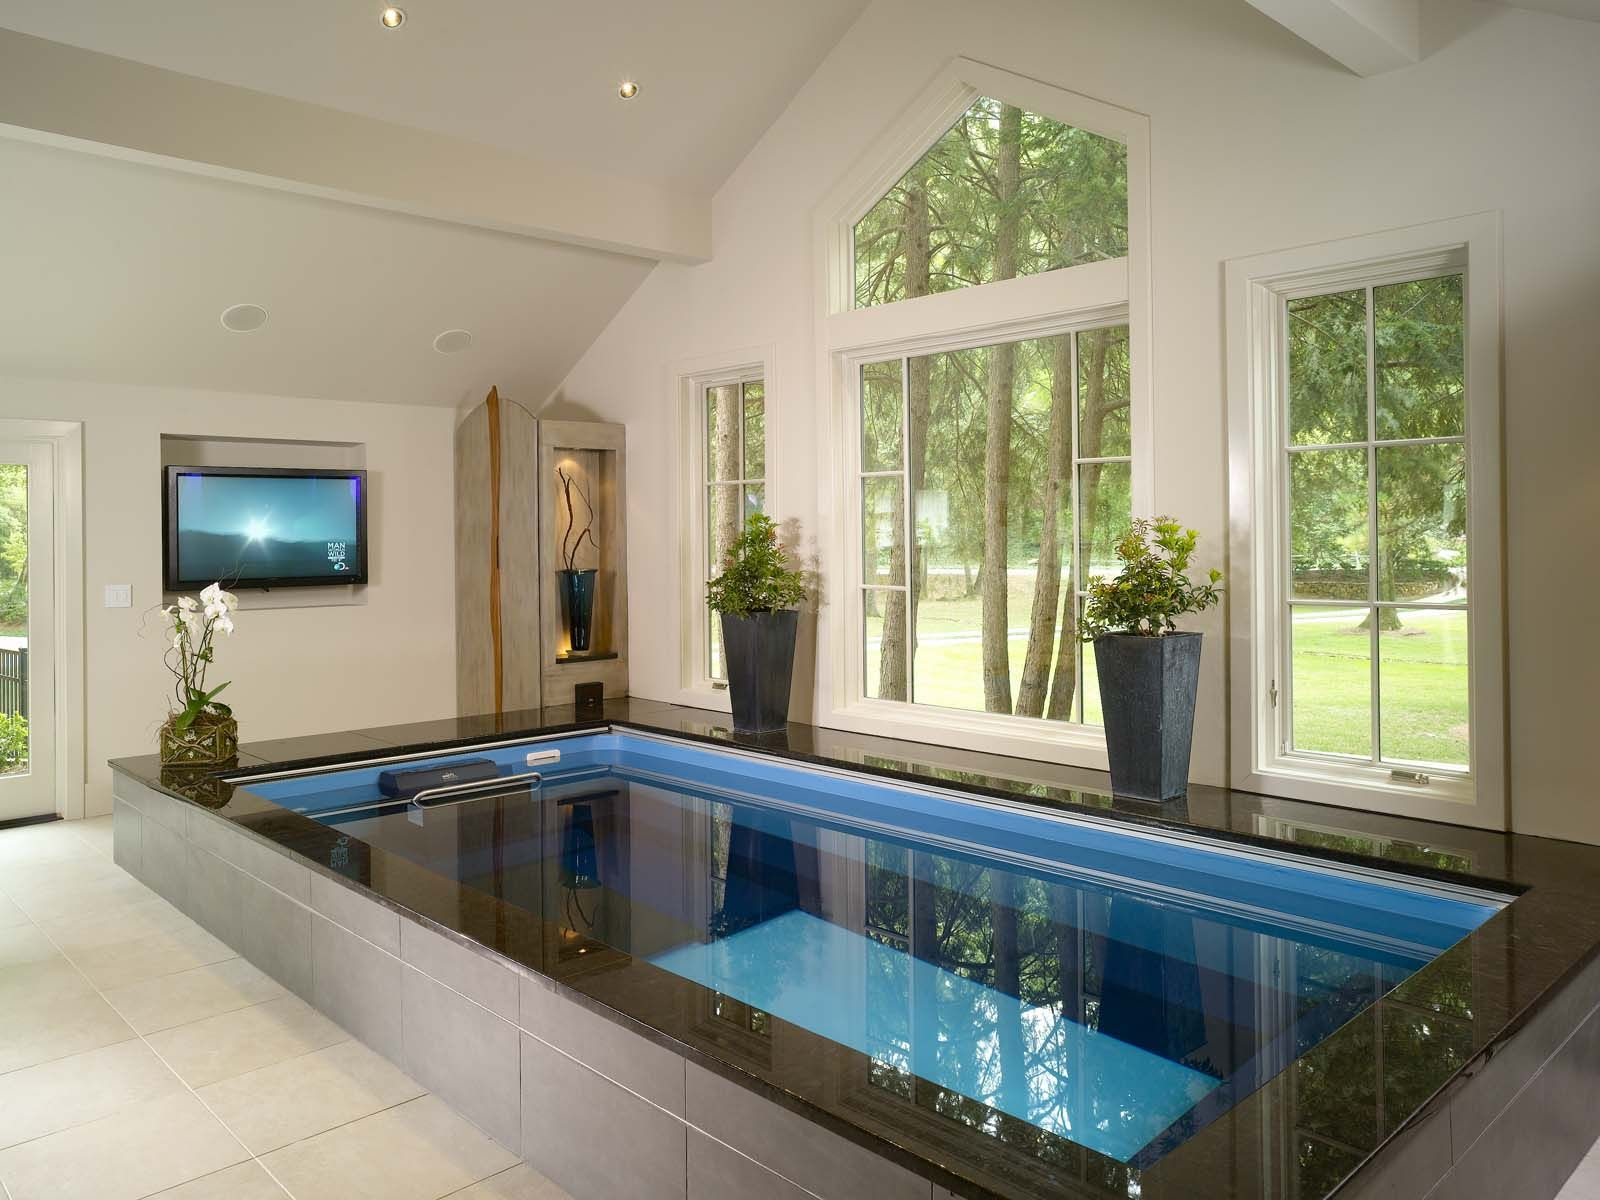 Luxury Homes With Indoor Pools best 25+ indoor swimming pools ideas on pinterest | amazing